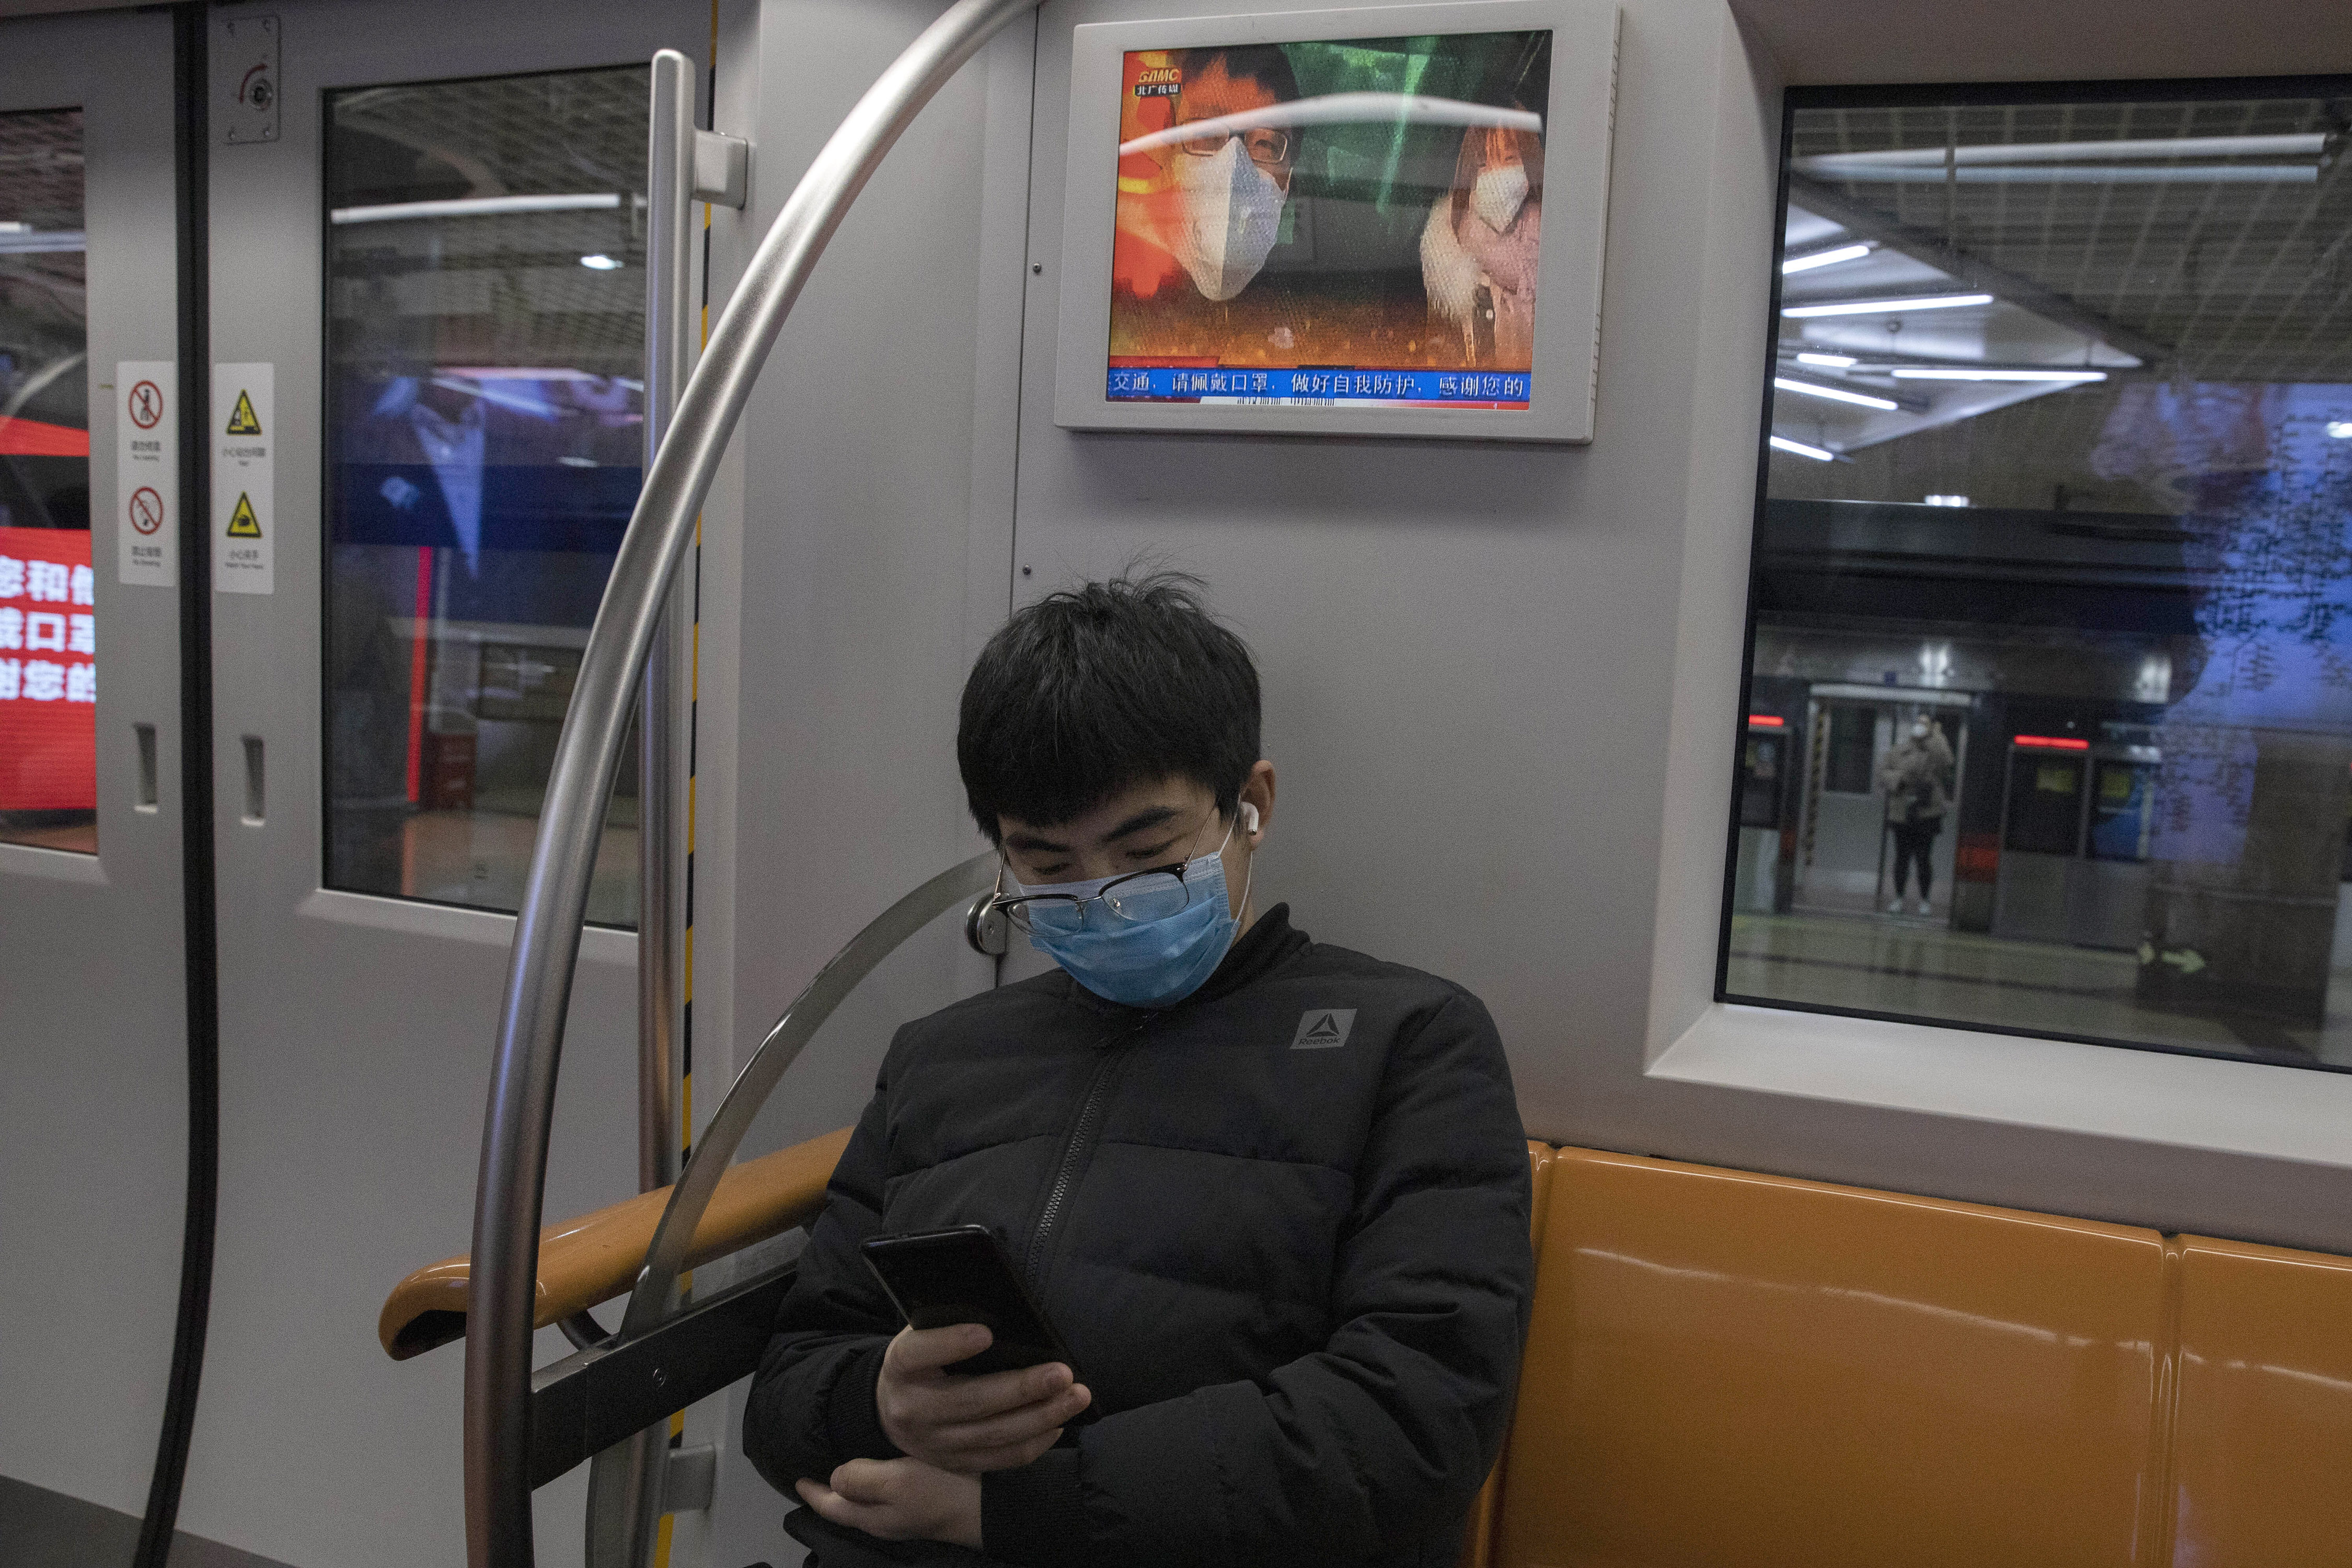 A passenger sits under a public information display encouraging the use of mask on a subway train in Beijing Monday, March 9, 2020. With almost no new COVID-19 cases being reported in Beijing, workers are slowly returning to their offices with masks on and disinfectant in hand. But officials remain cautious, torn between wanting to restart the economy and fear of a resurgence of the outbreak.